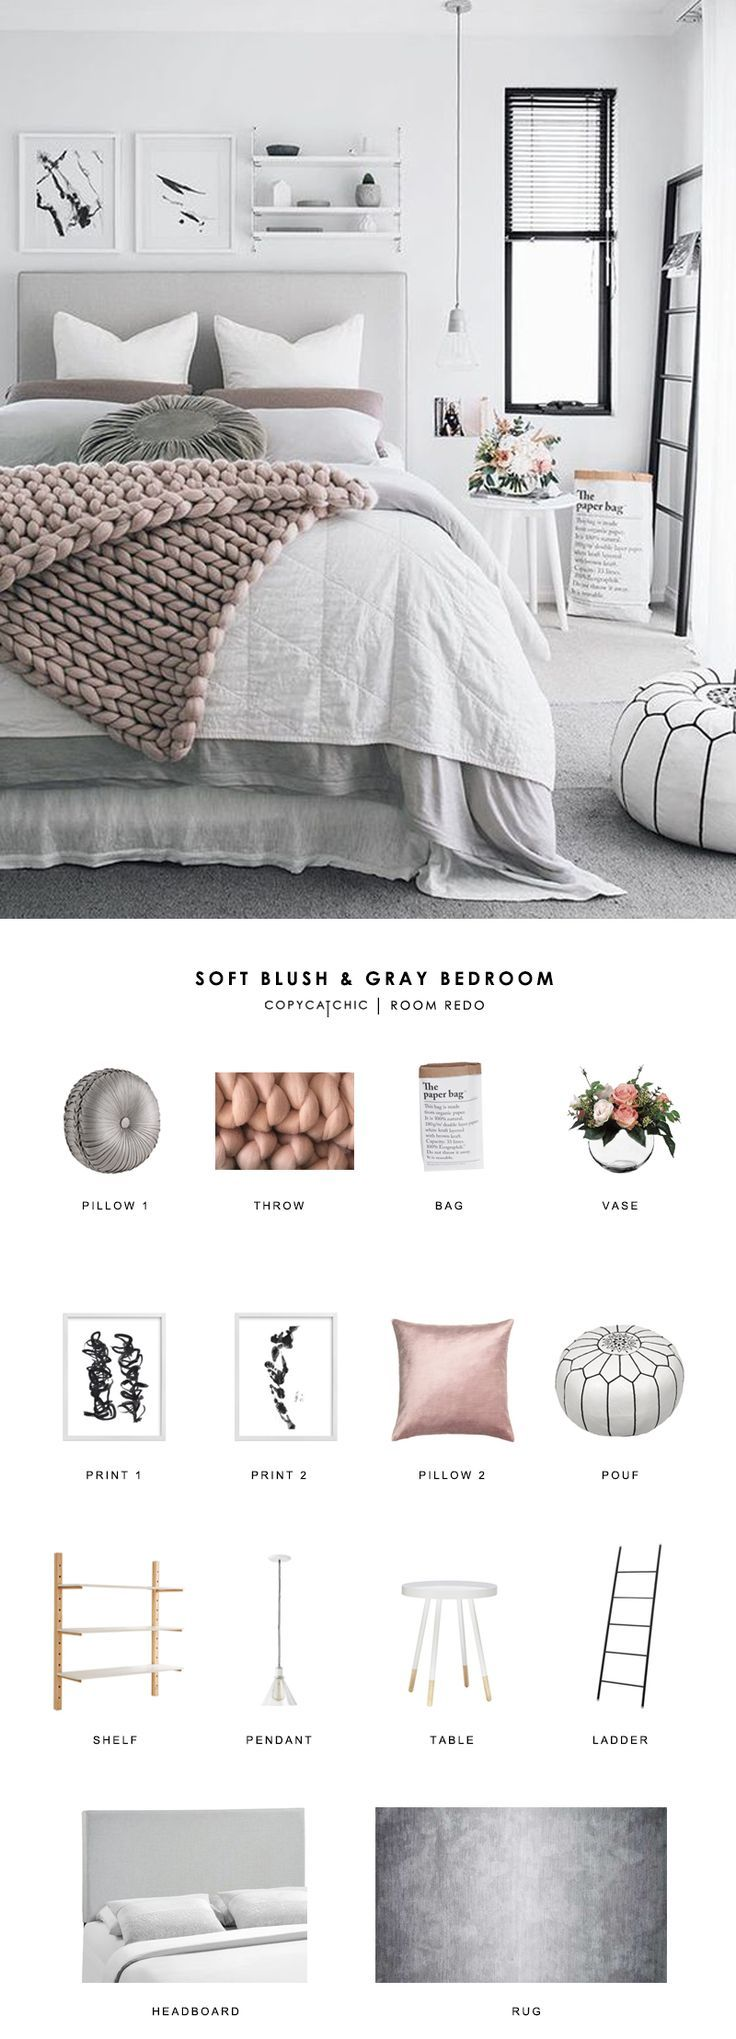 Copy Cat Chic Room Redo | Soft Blush and Gray Bedroom | Copy Cat Chic